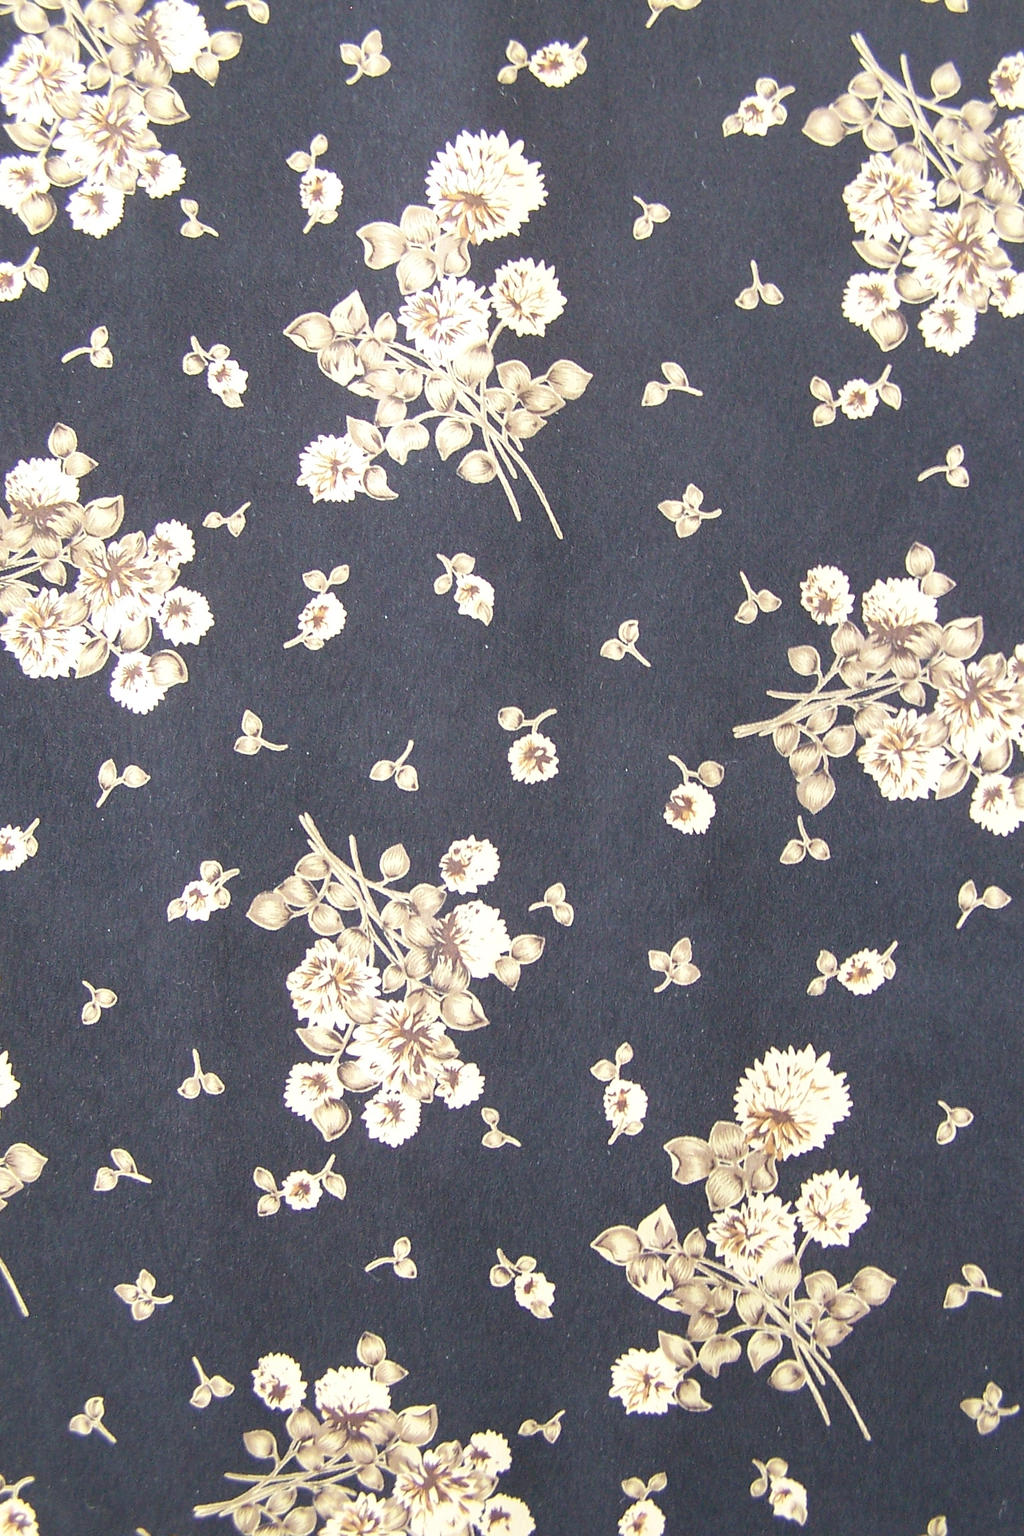 download textures gold floral - photo #23